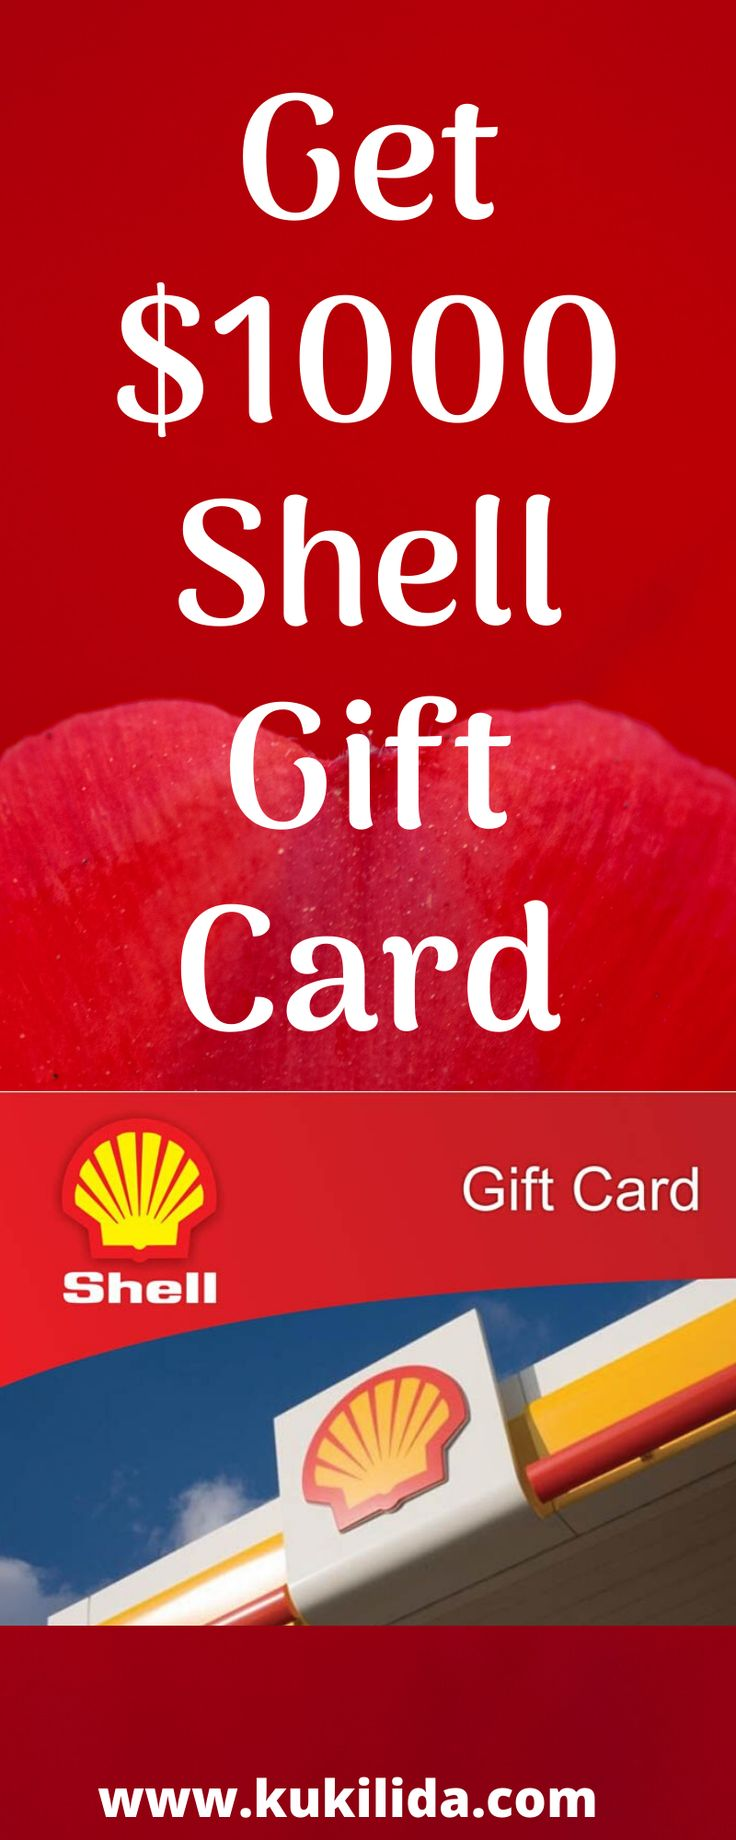 How to get 1000 shell gift card click the link below to